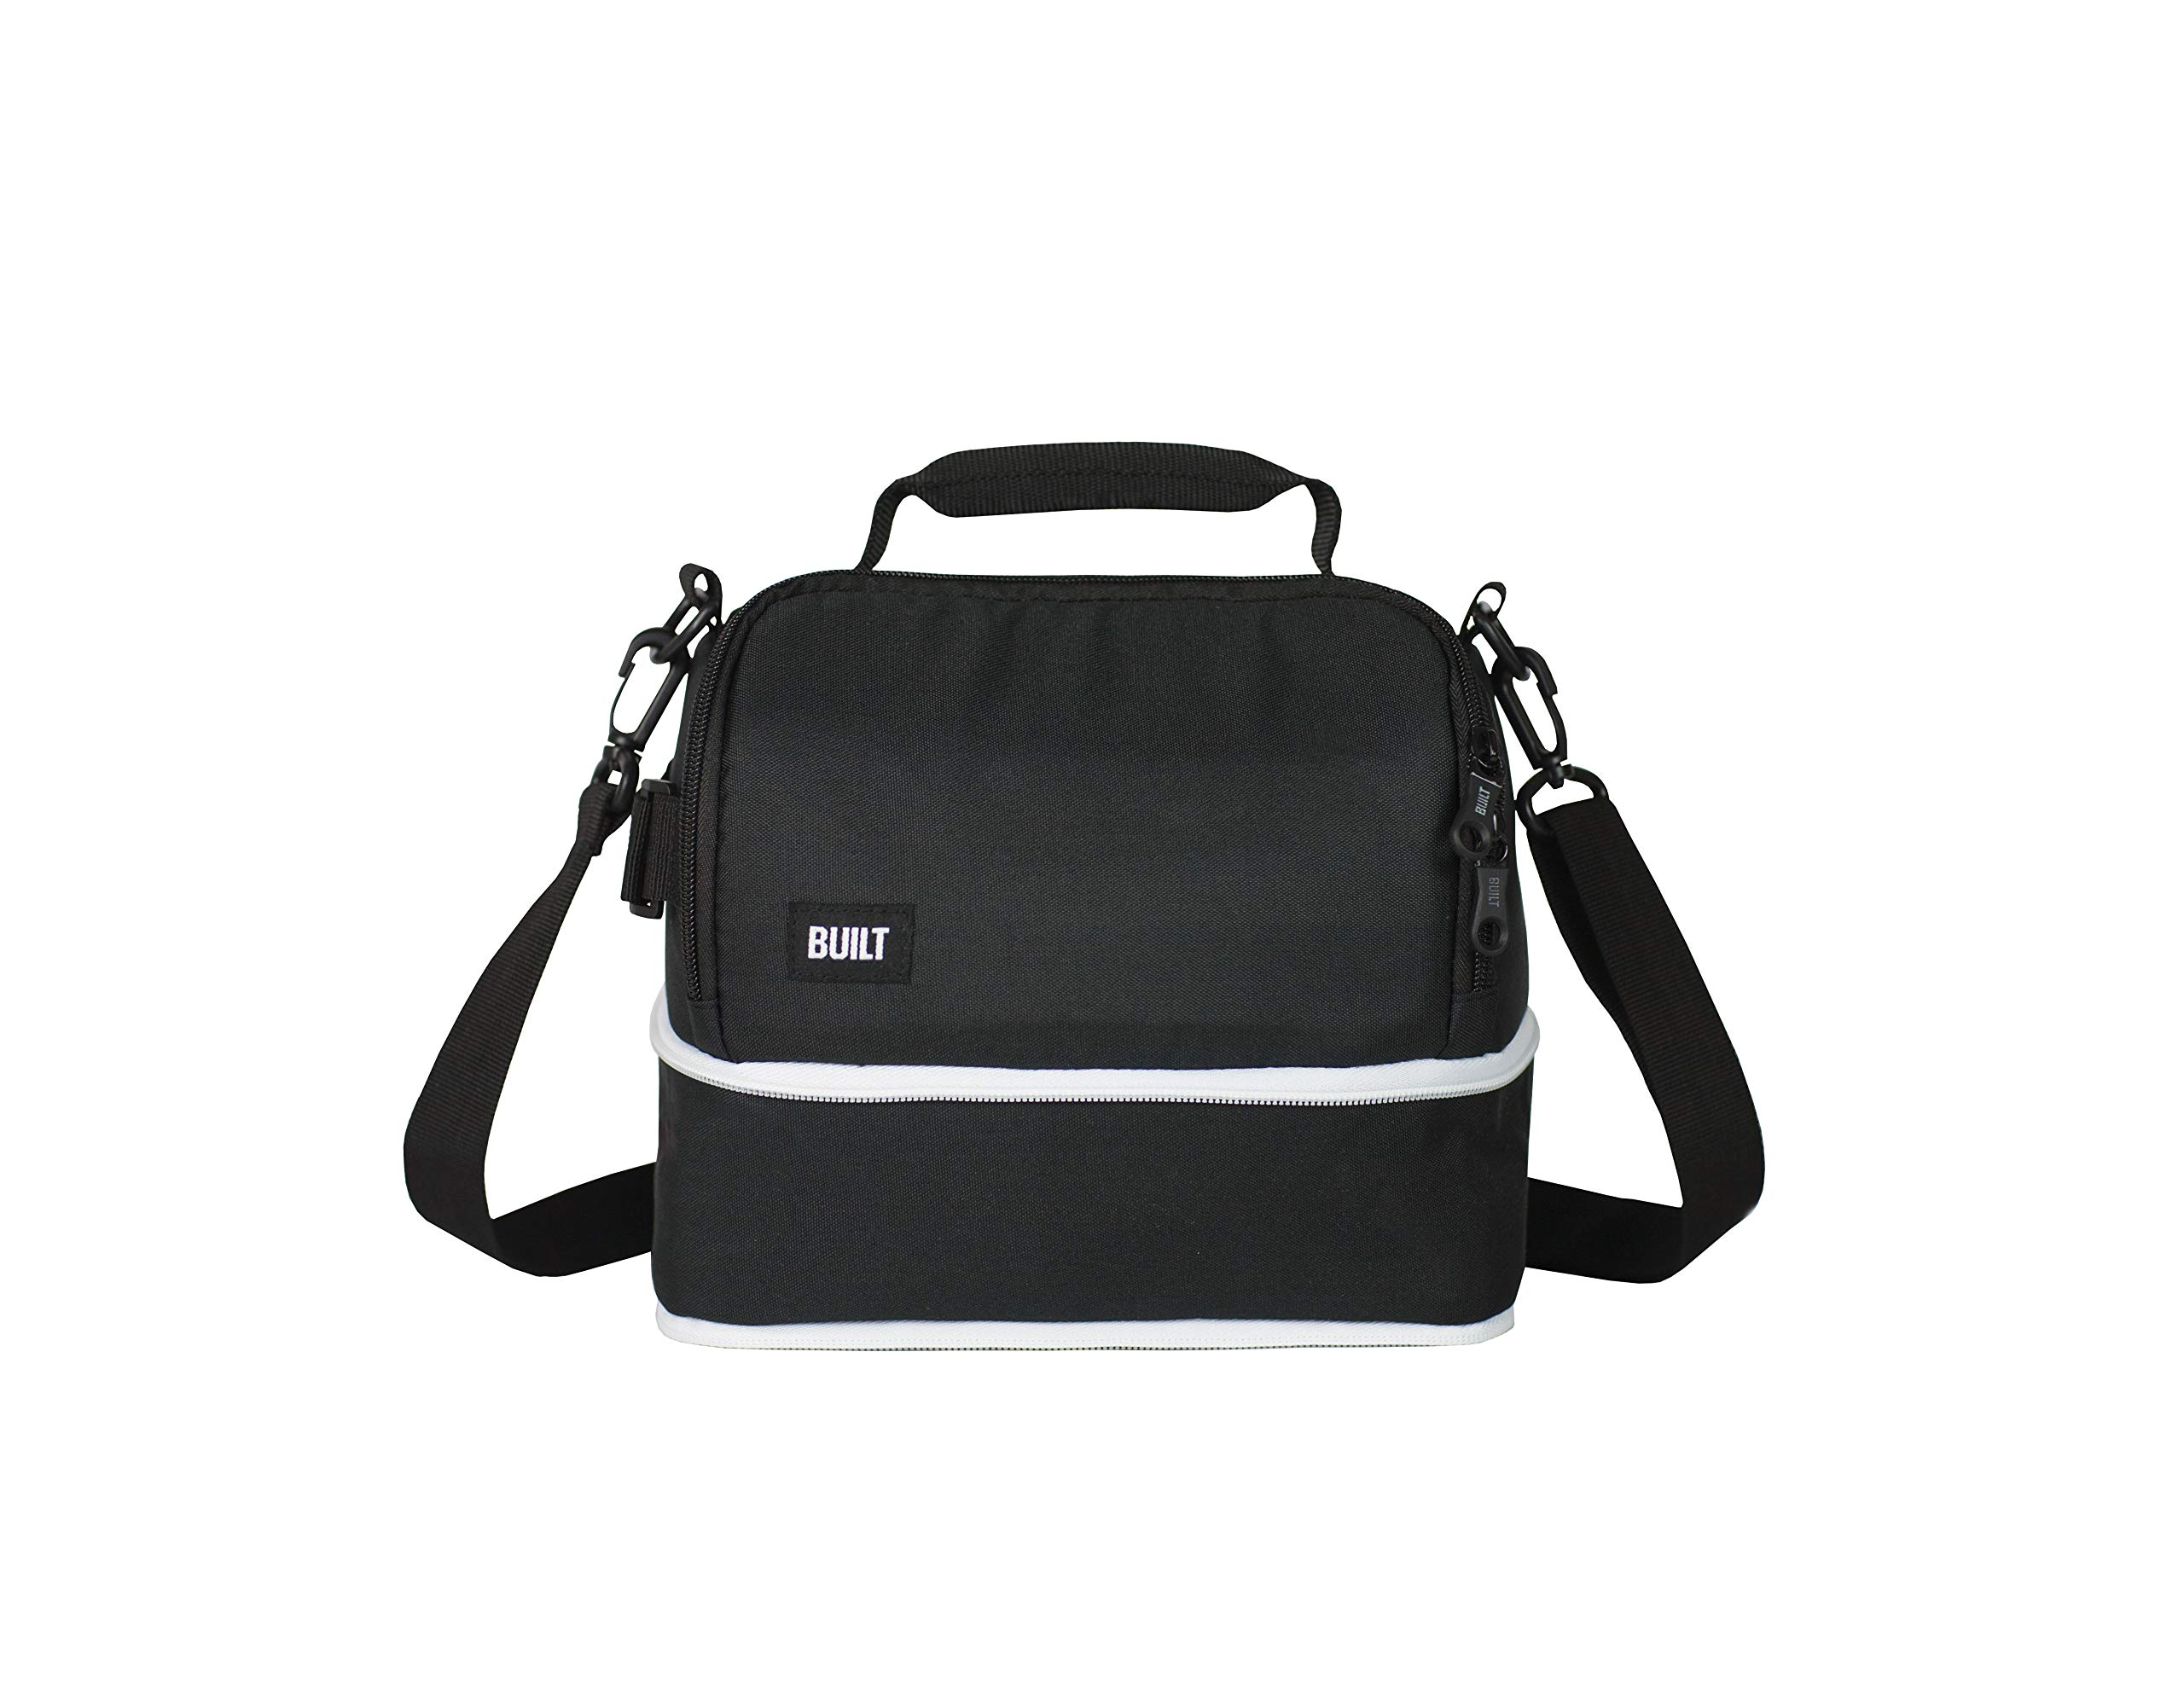 BUILT Expandable Convertable Water-Resistant Insulated Fabric Lunch Bag, 10-Inch, Black